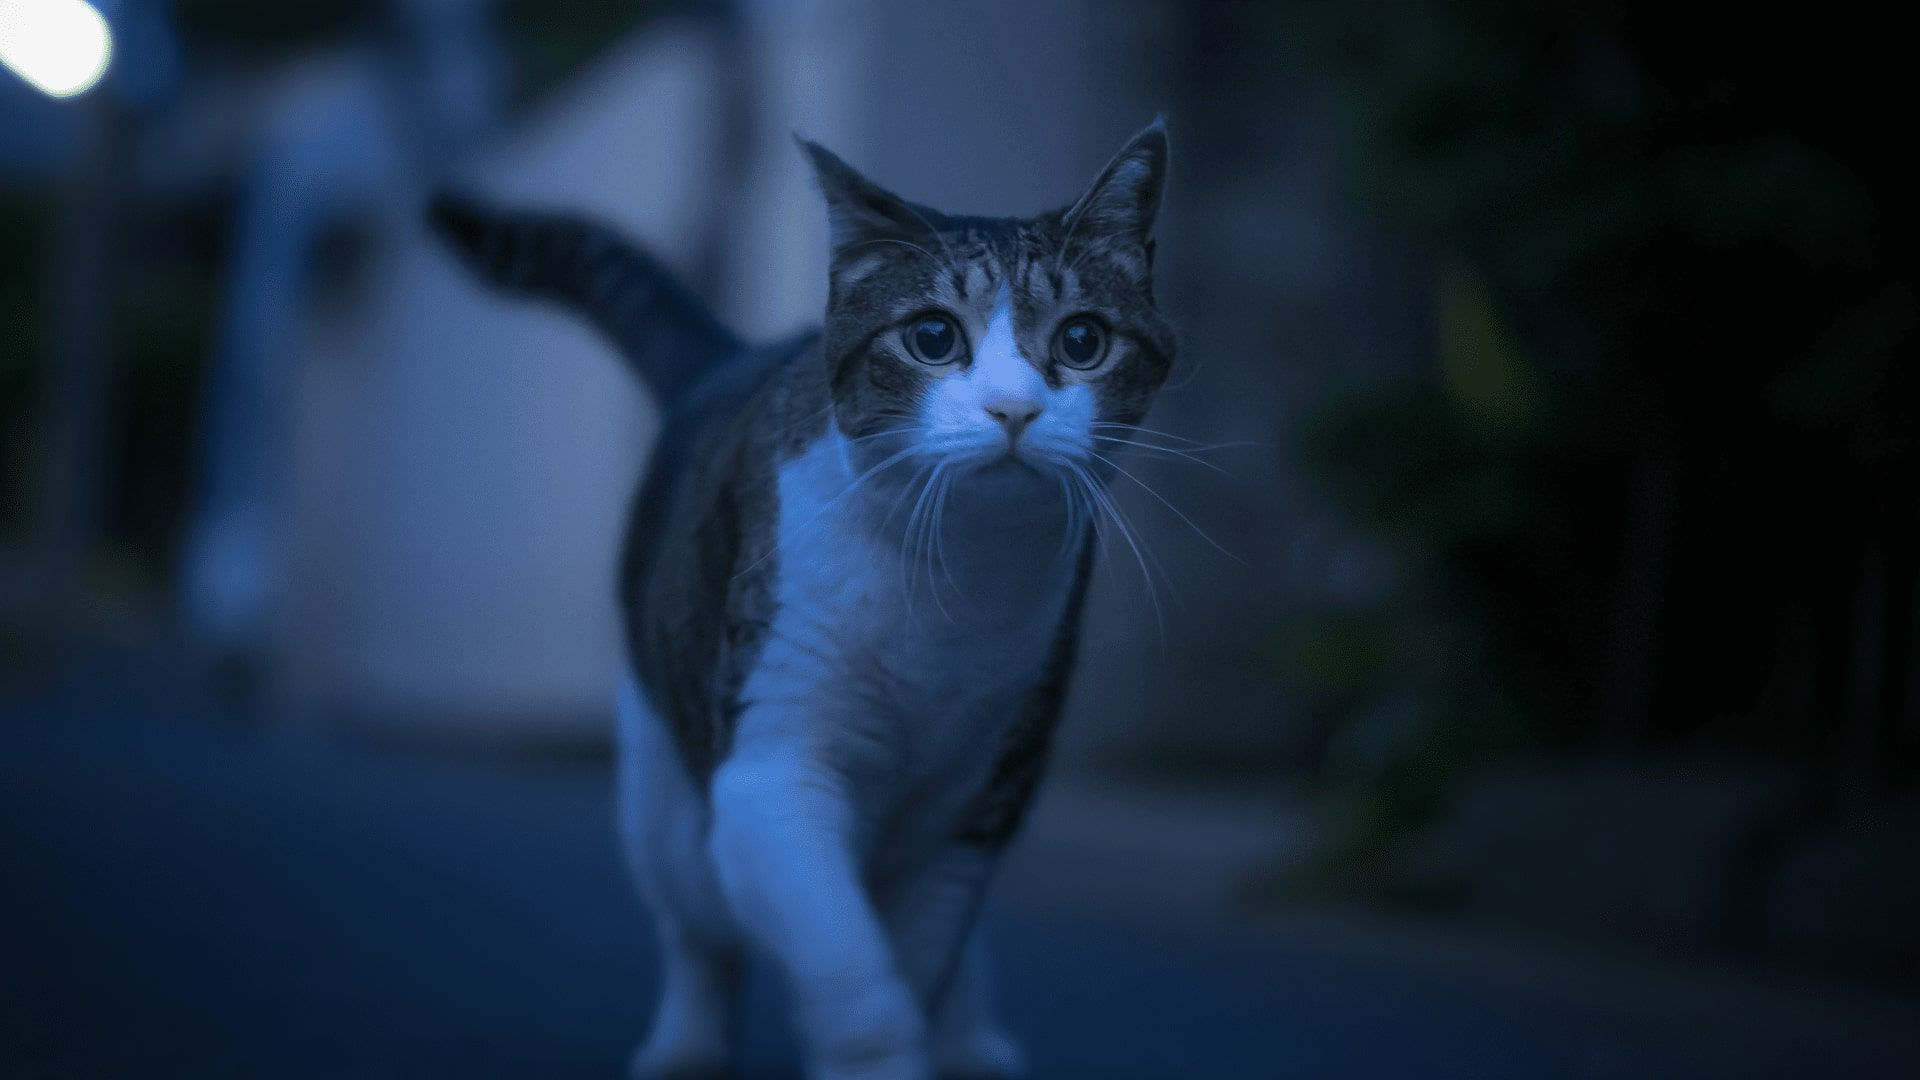 Why Is My Cat Crying At Night Purrfect Love Cat Crying Crying At Night Cats